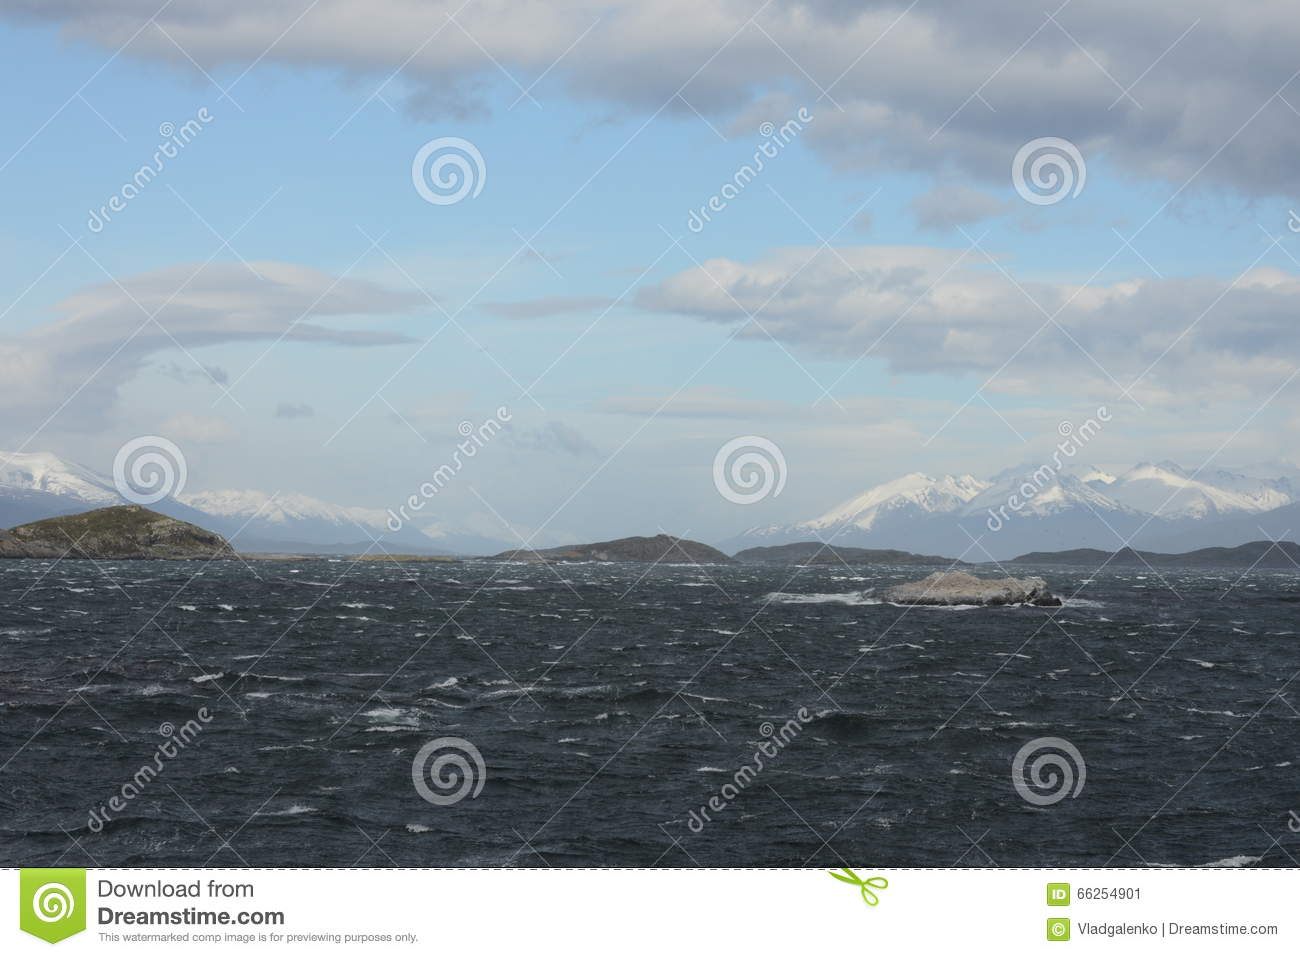 Download The Beagle Channel Separating The Main Island Of The Archipelago Of Tierra Del Fuego And Lying To The South Of The Island. Stock Image - Image of strait, chile: 66254901